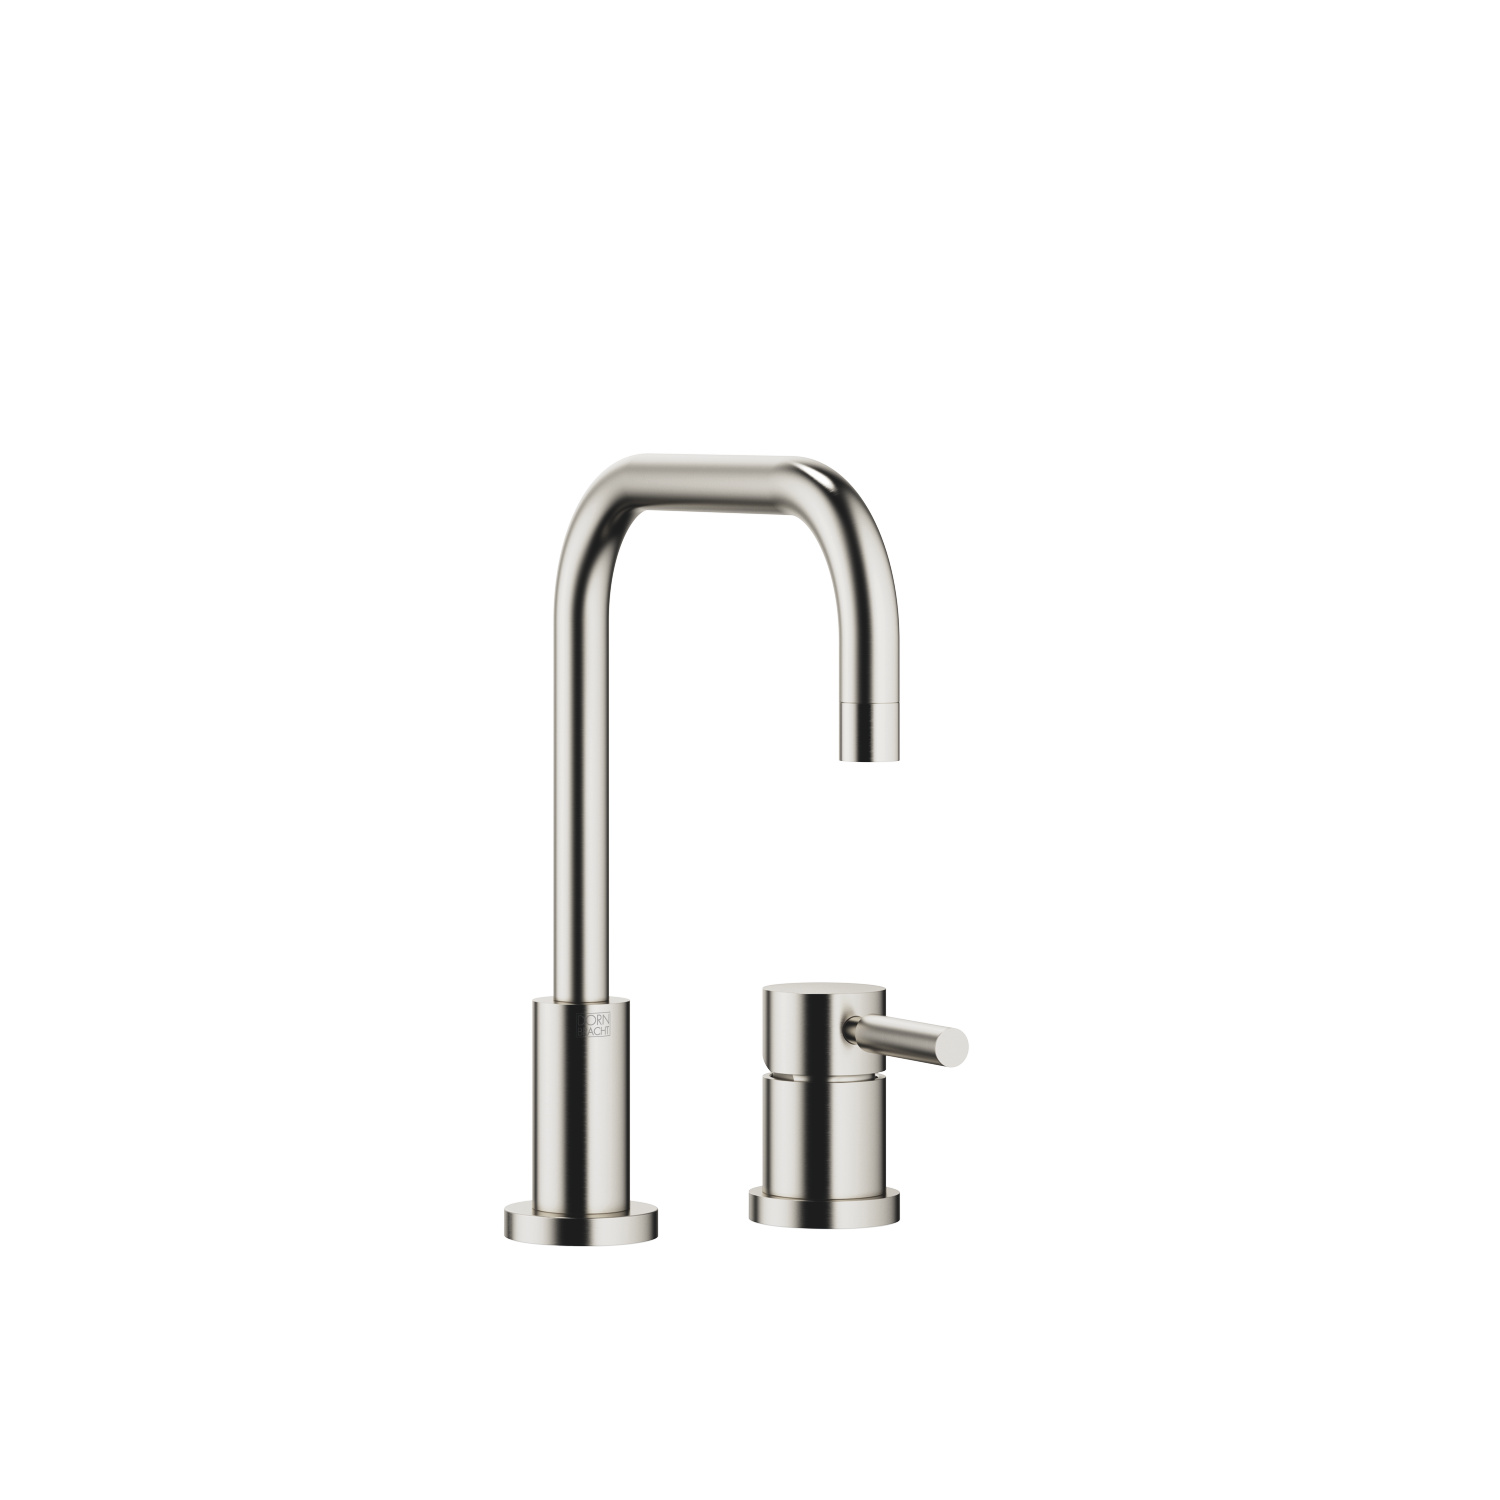 Two-hole mixer with individual rosettes - platinum matt